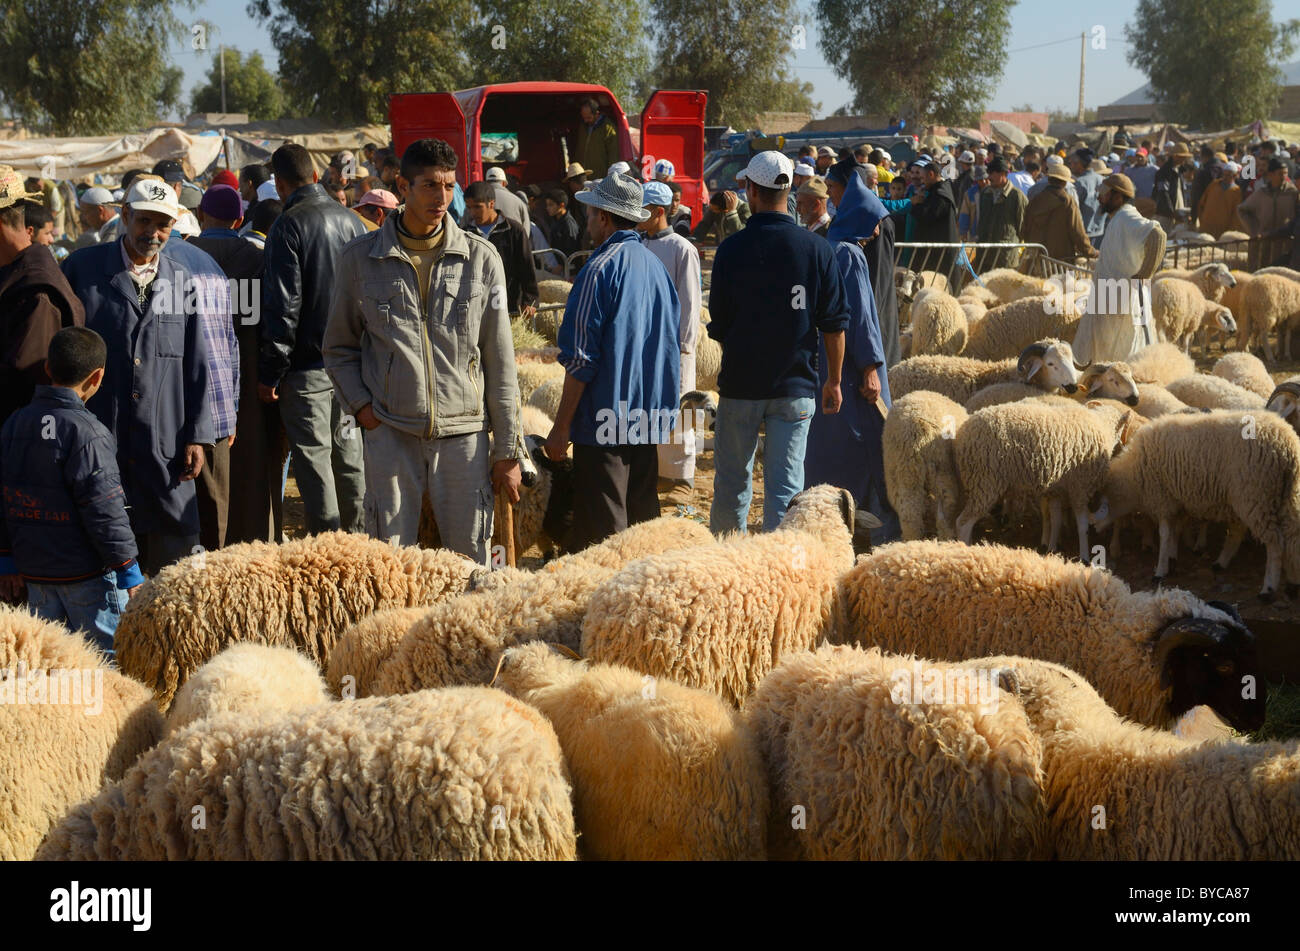 Crowded sheep market at Ait Ourir Morocco for sacrifice at Muslim Eid Al Adha feast - Stock Image